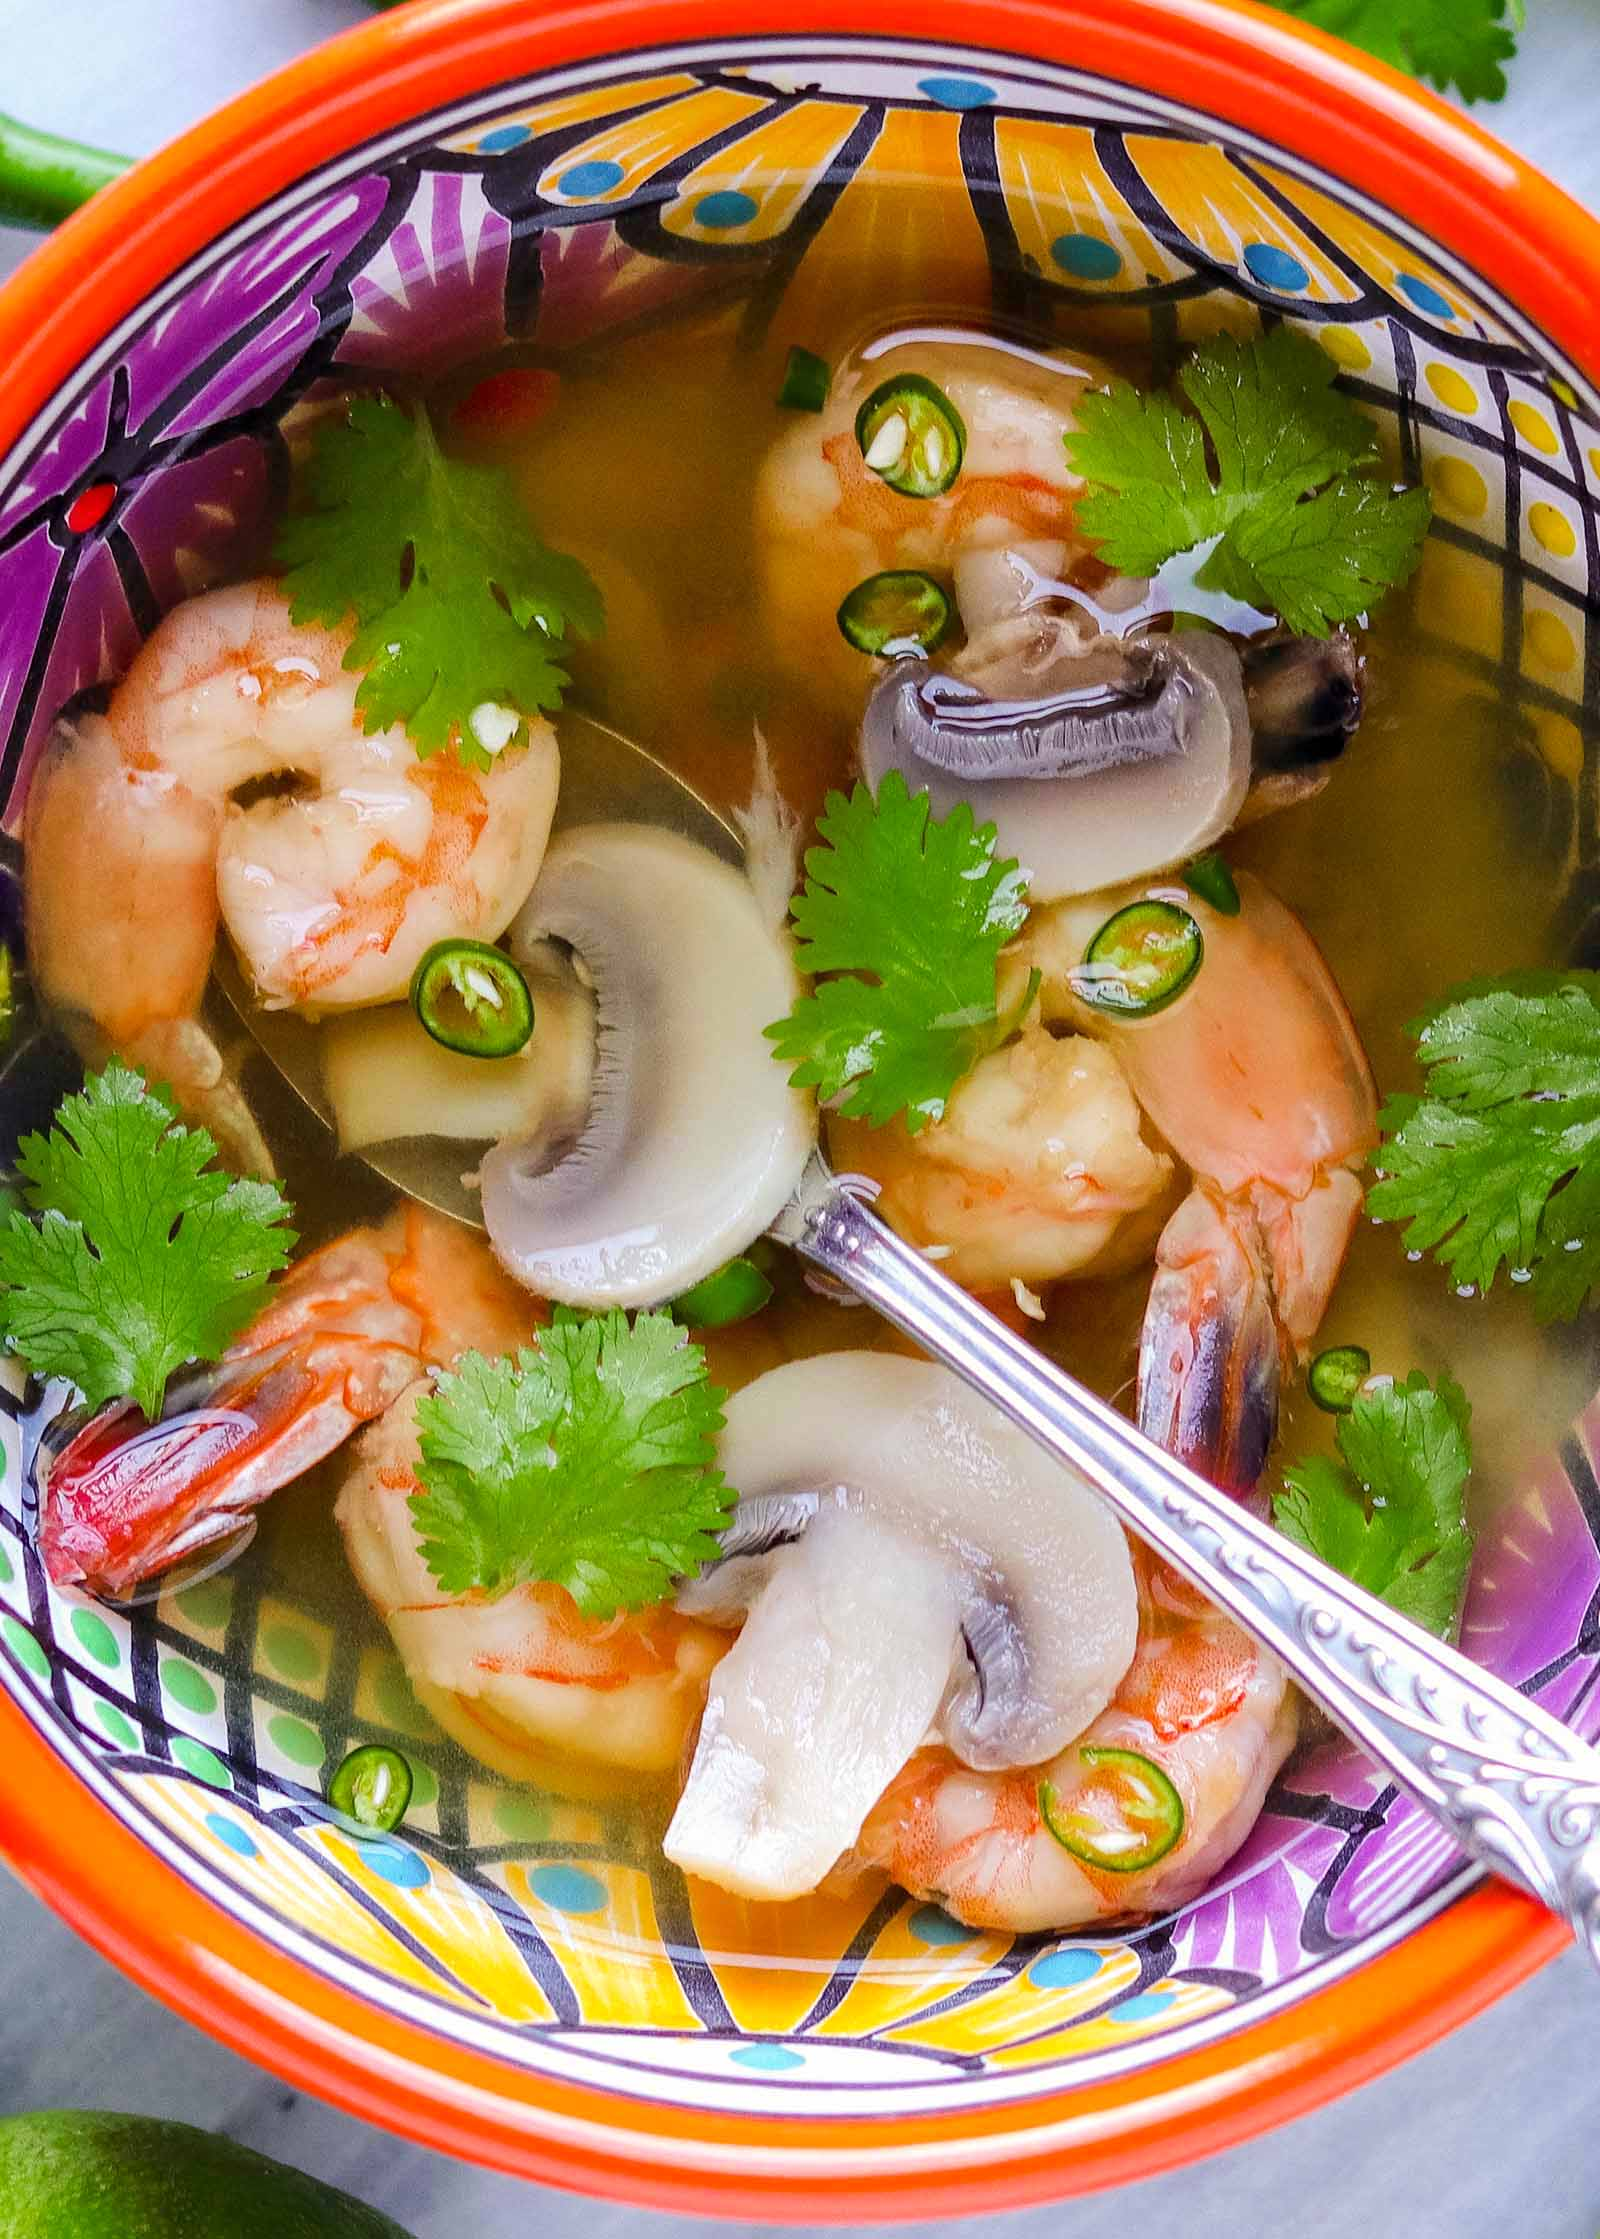 Thai soup with shrimp in a brightly patterned bowl and spoon. Cilantro, shrimp, peppers, mushrooms and a light broth are in the bowl.